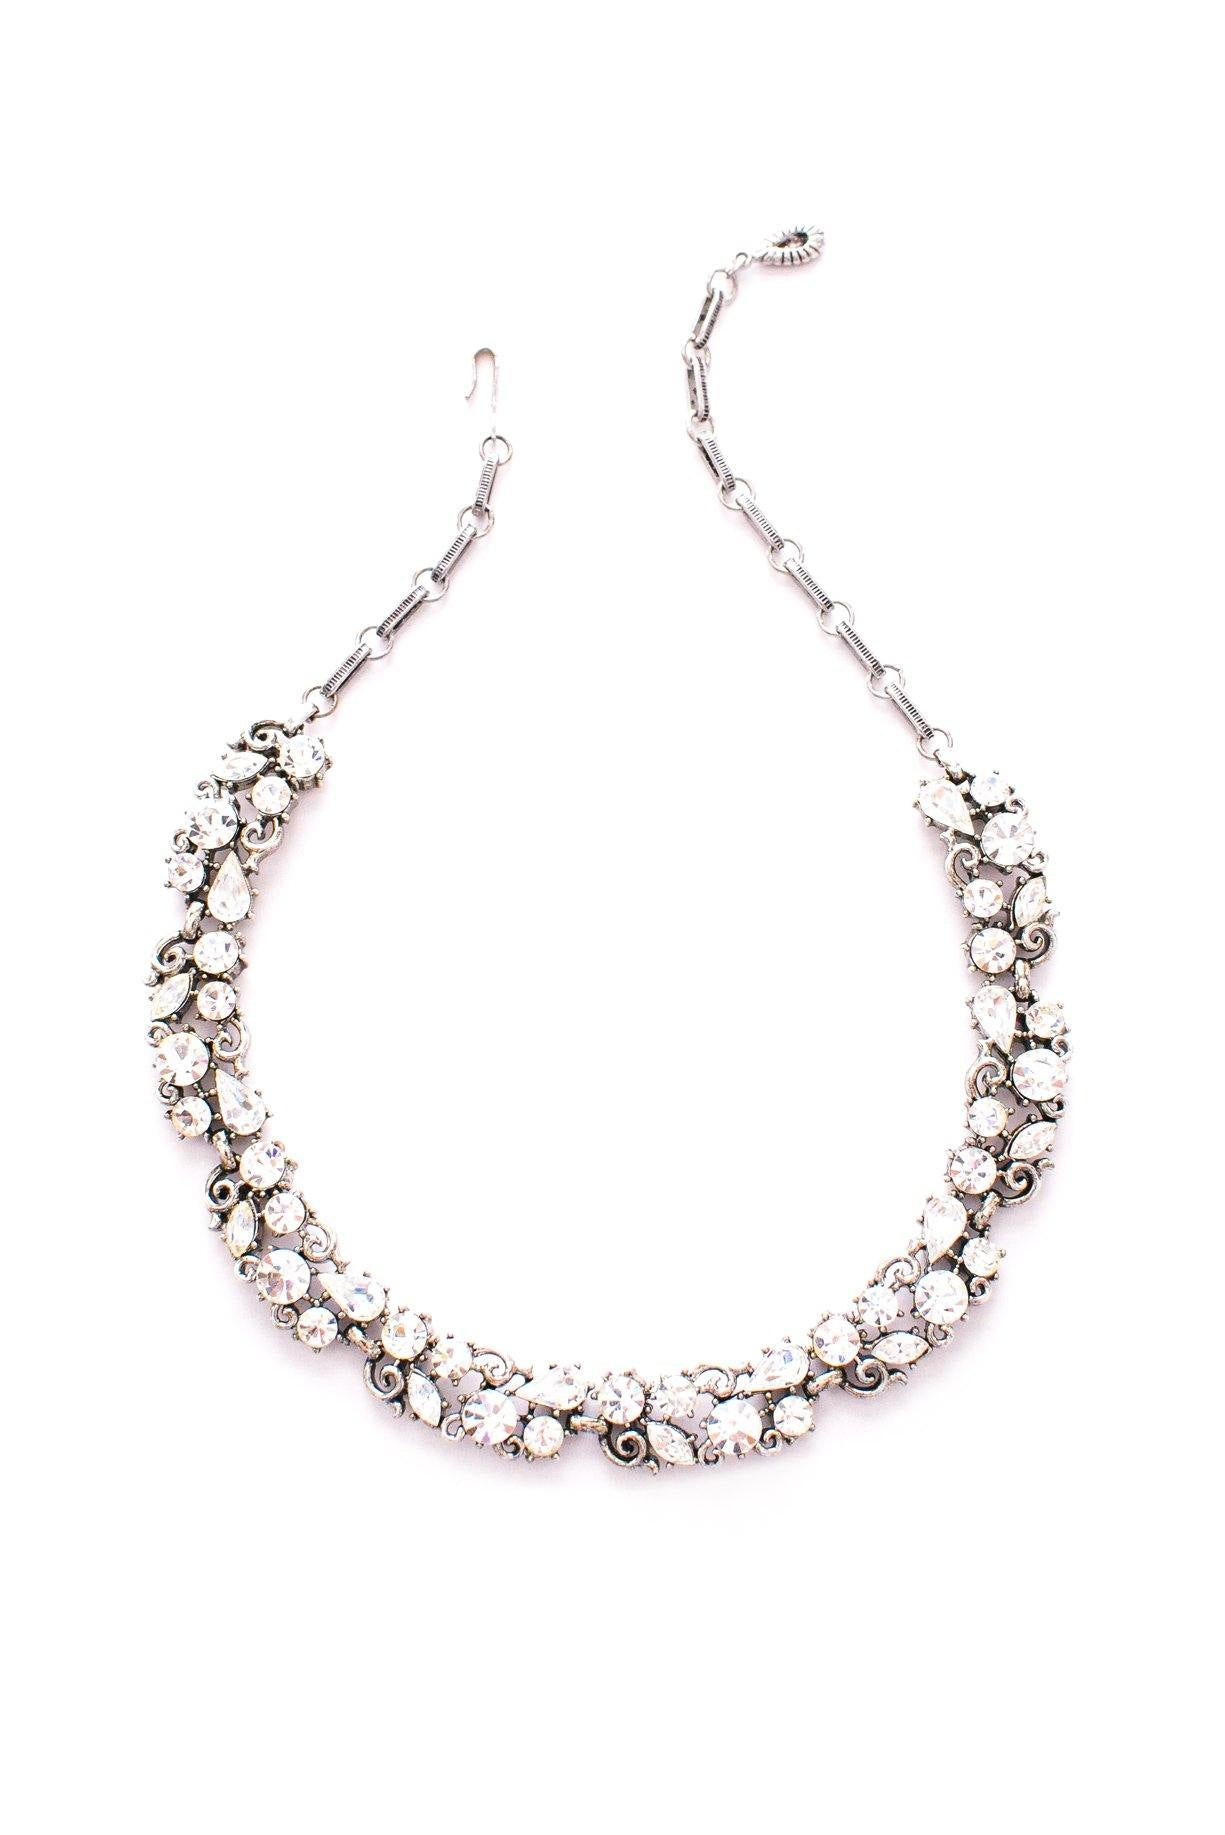 Lisner vintage rhinestone statement necklace from Sweet & Spark.